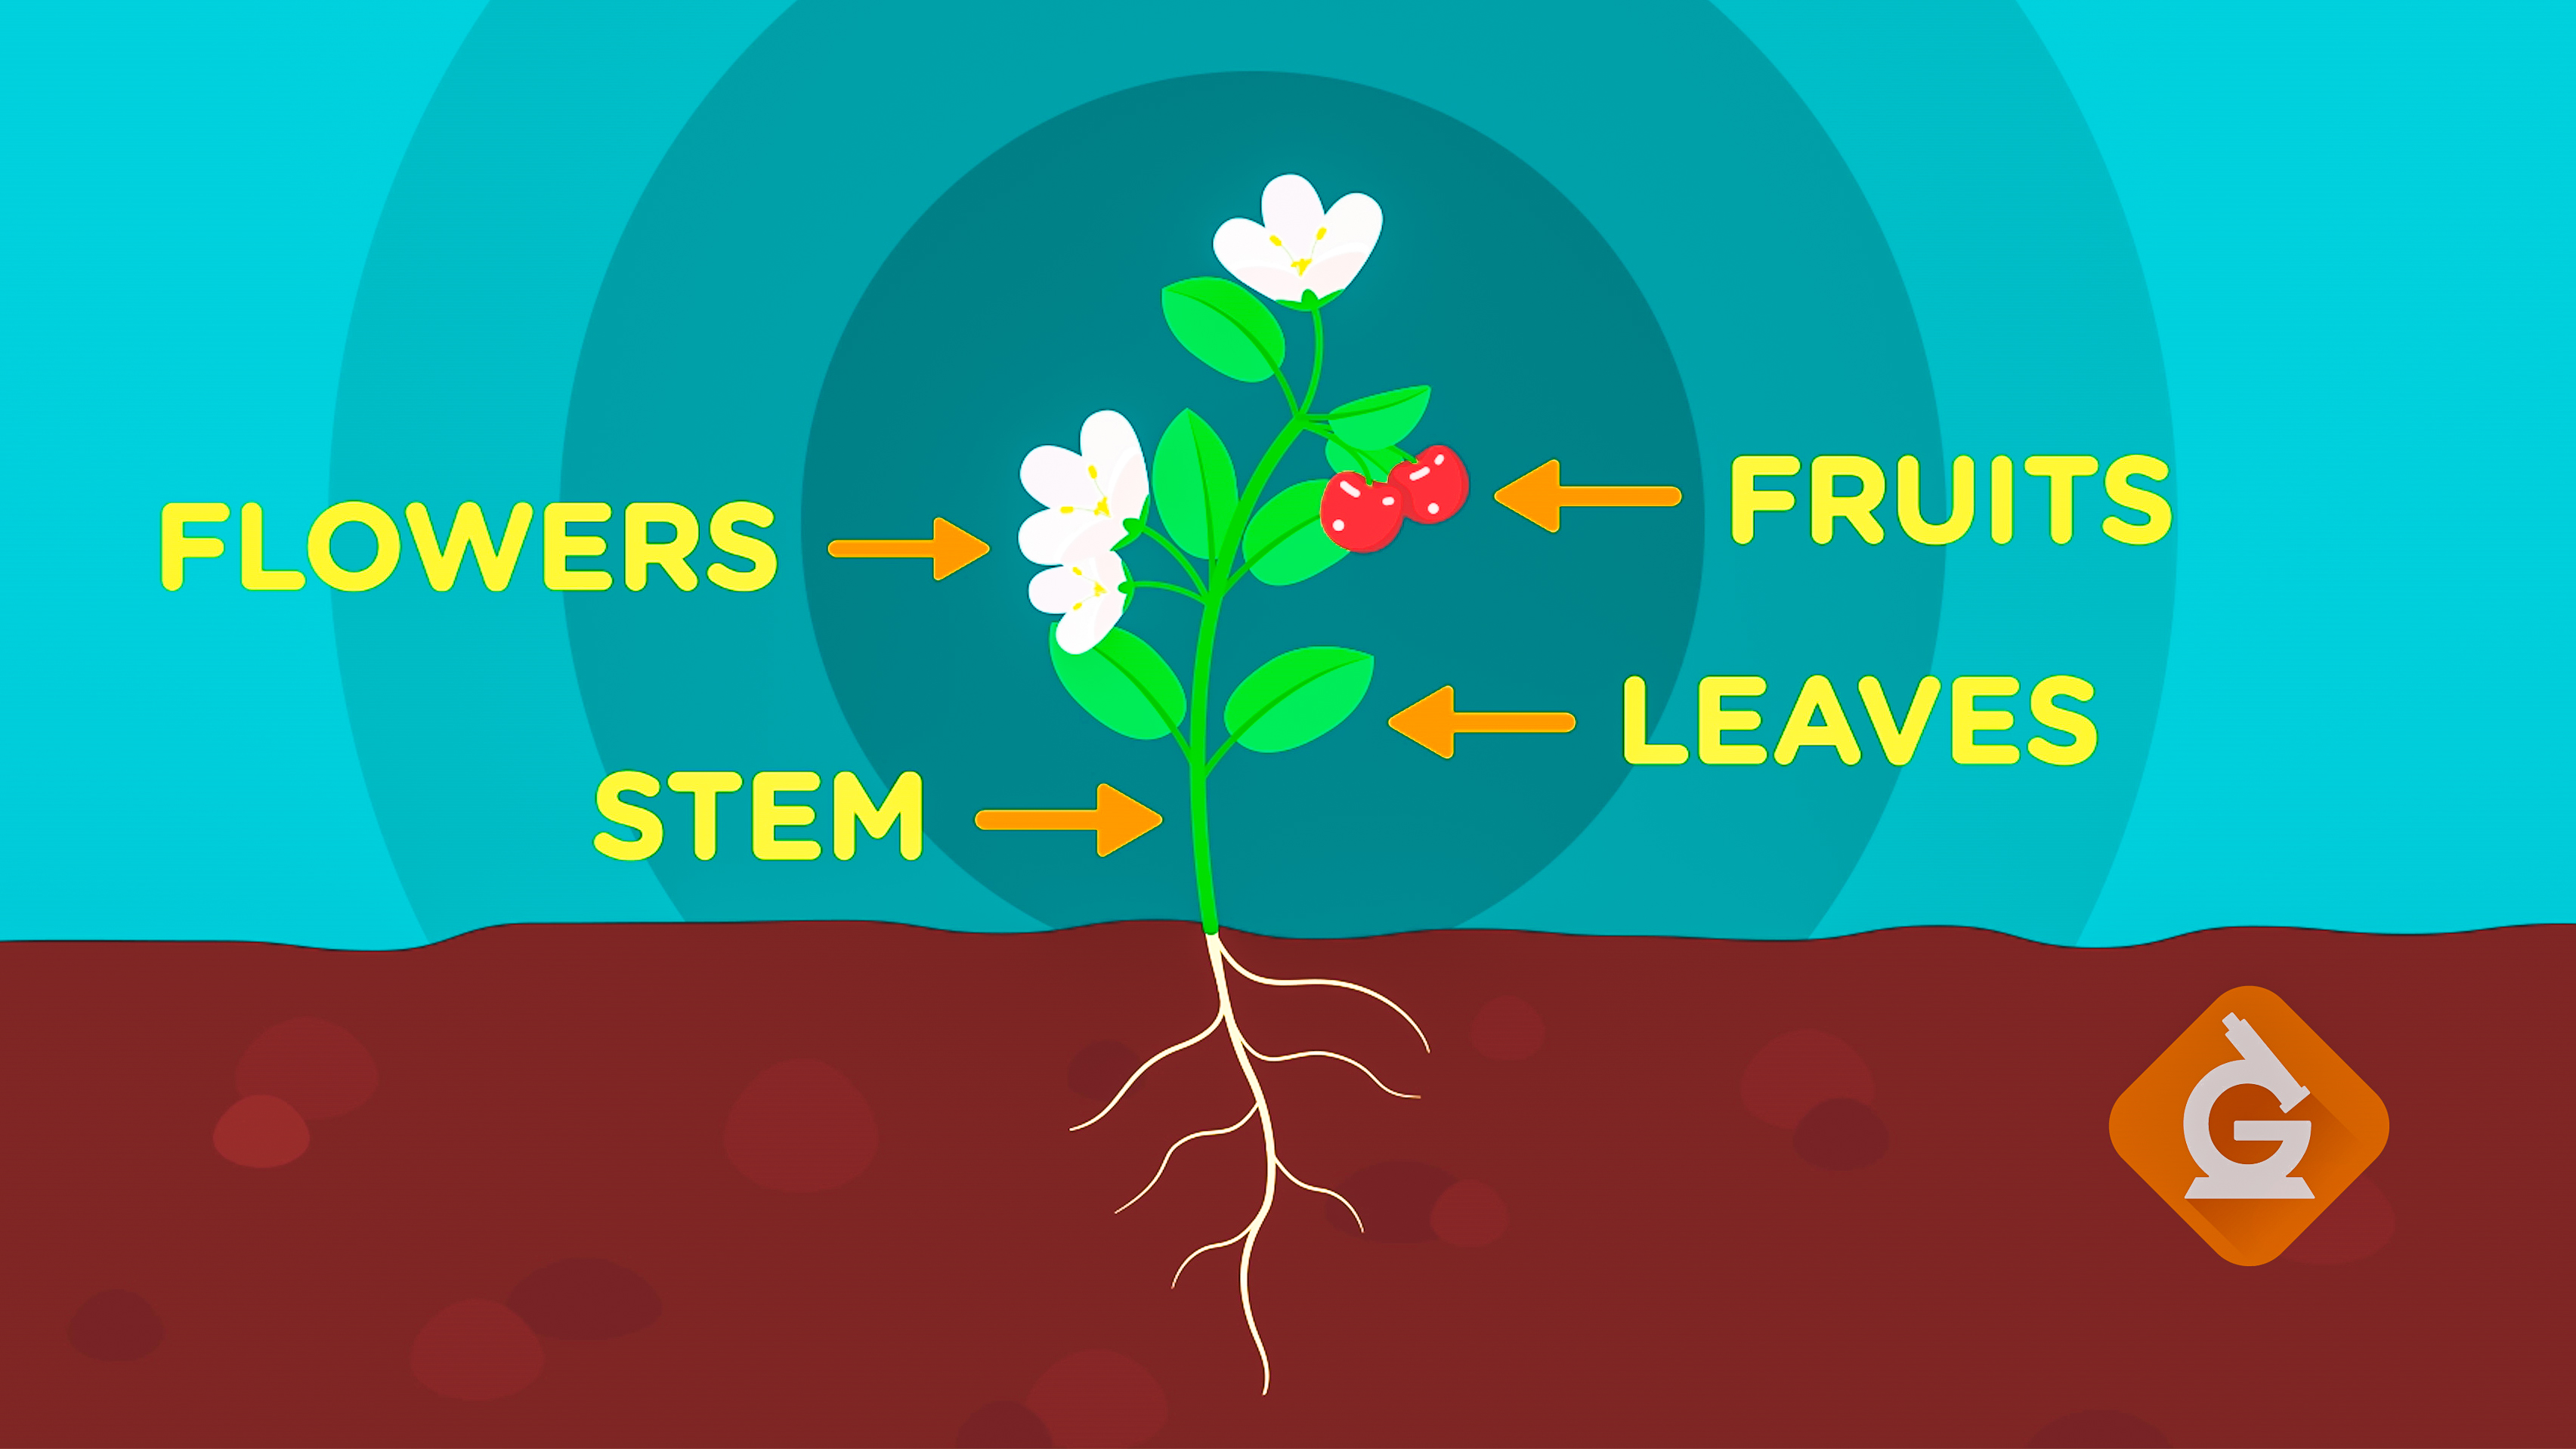 diagram of the 5 parts of a plant